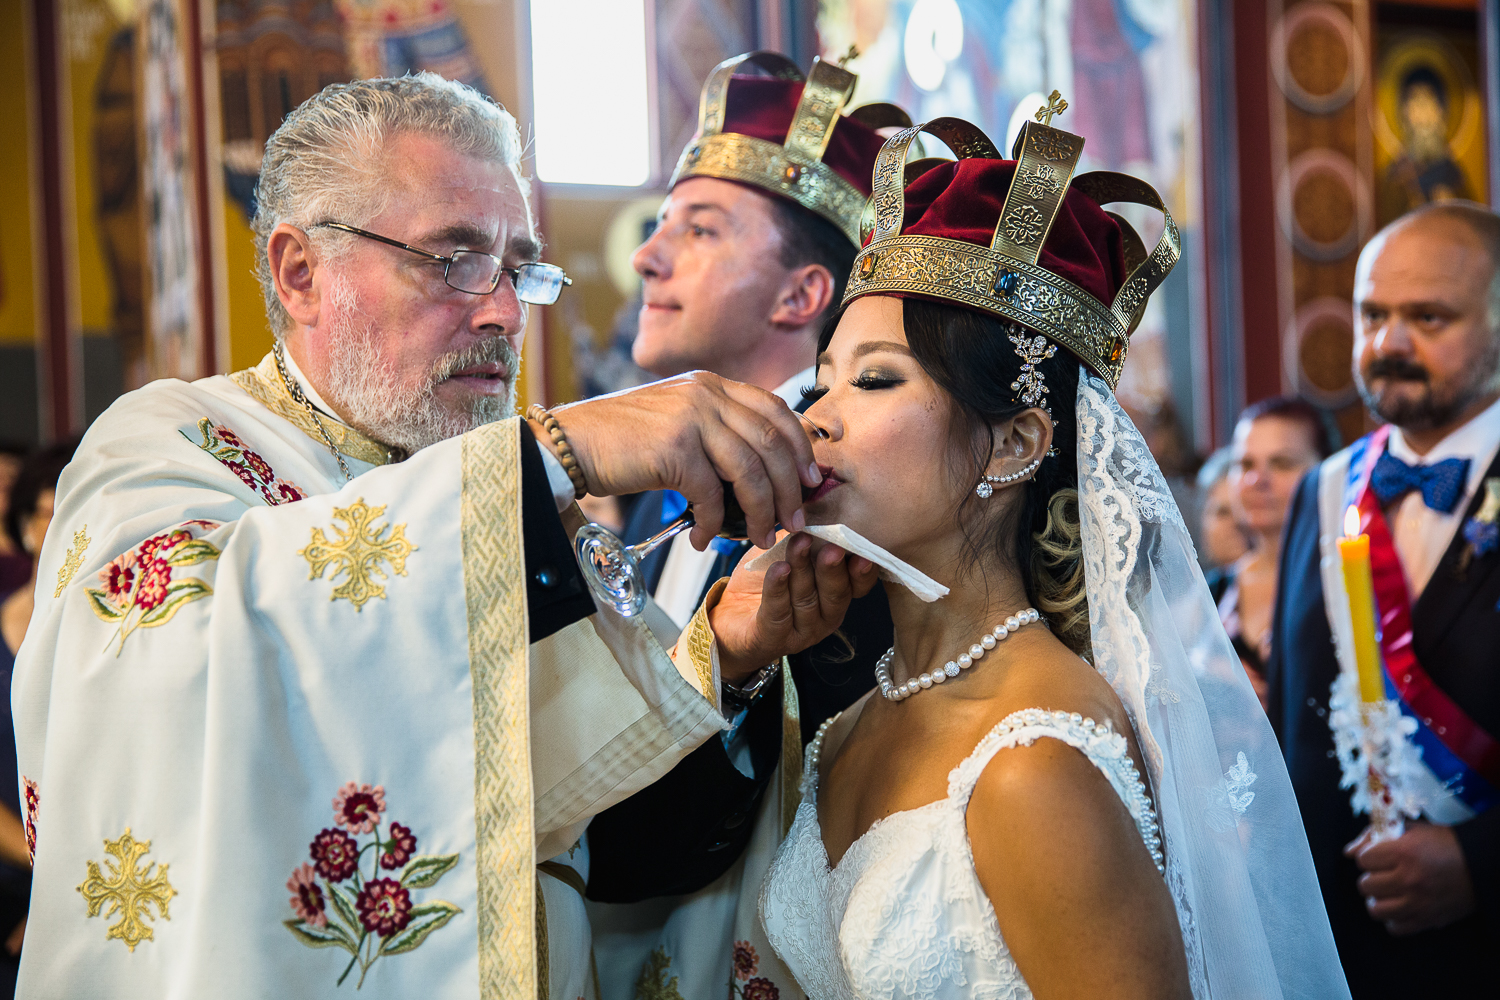 St-Sava-Serbian-Orthodox-Church-Wedding-Mississauga-Ontario-Derrel-Ho-Shing-Photography-0016.jpg